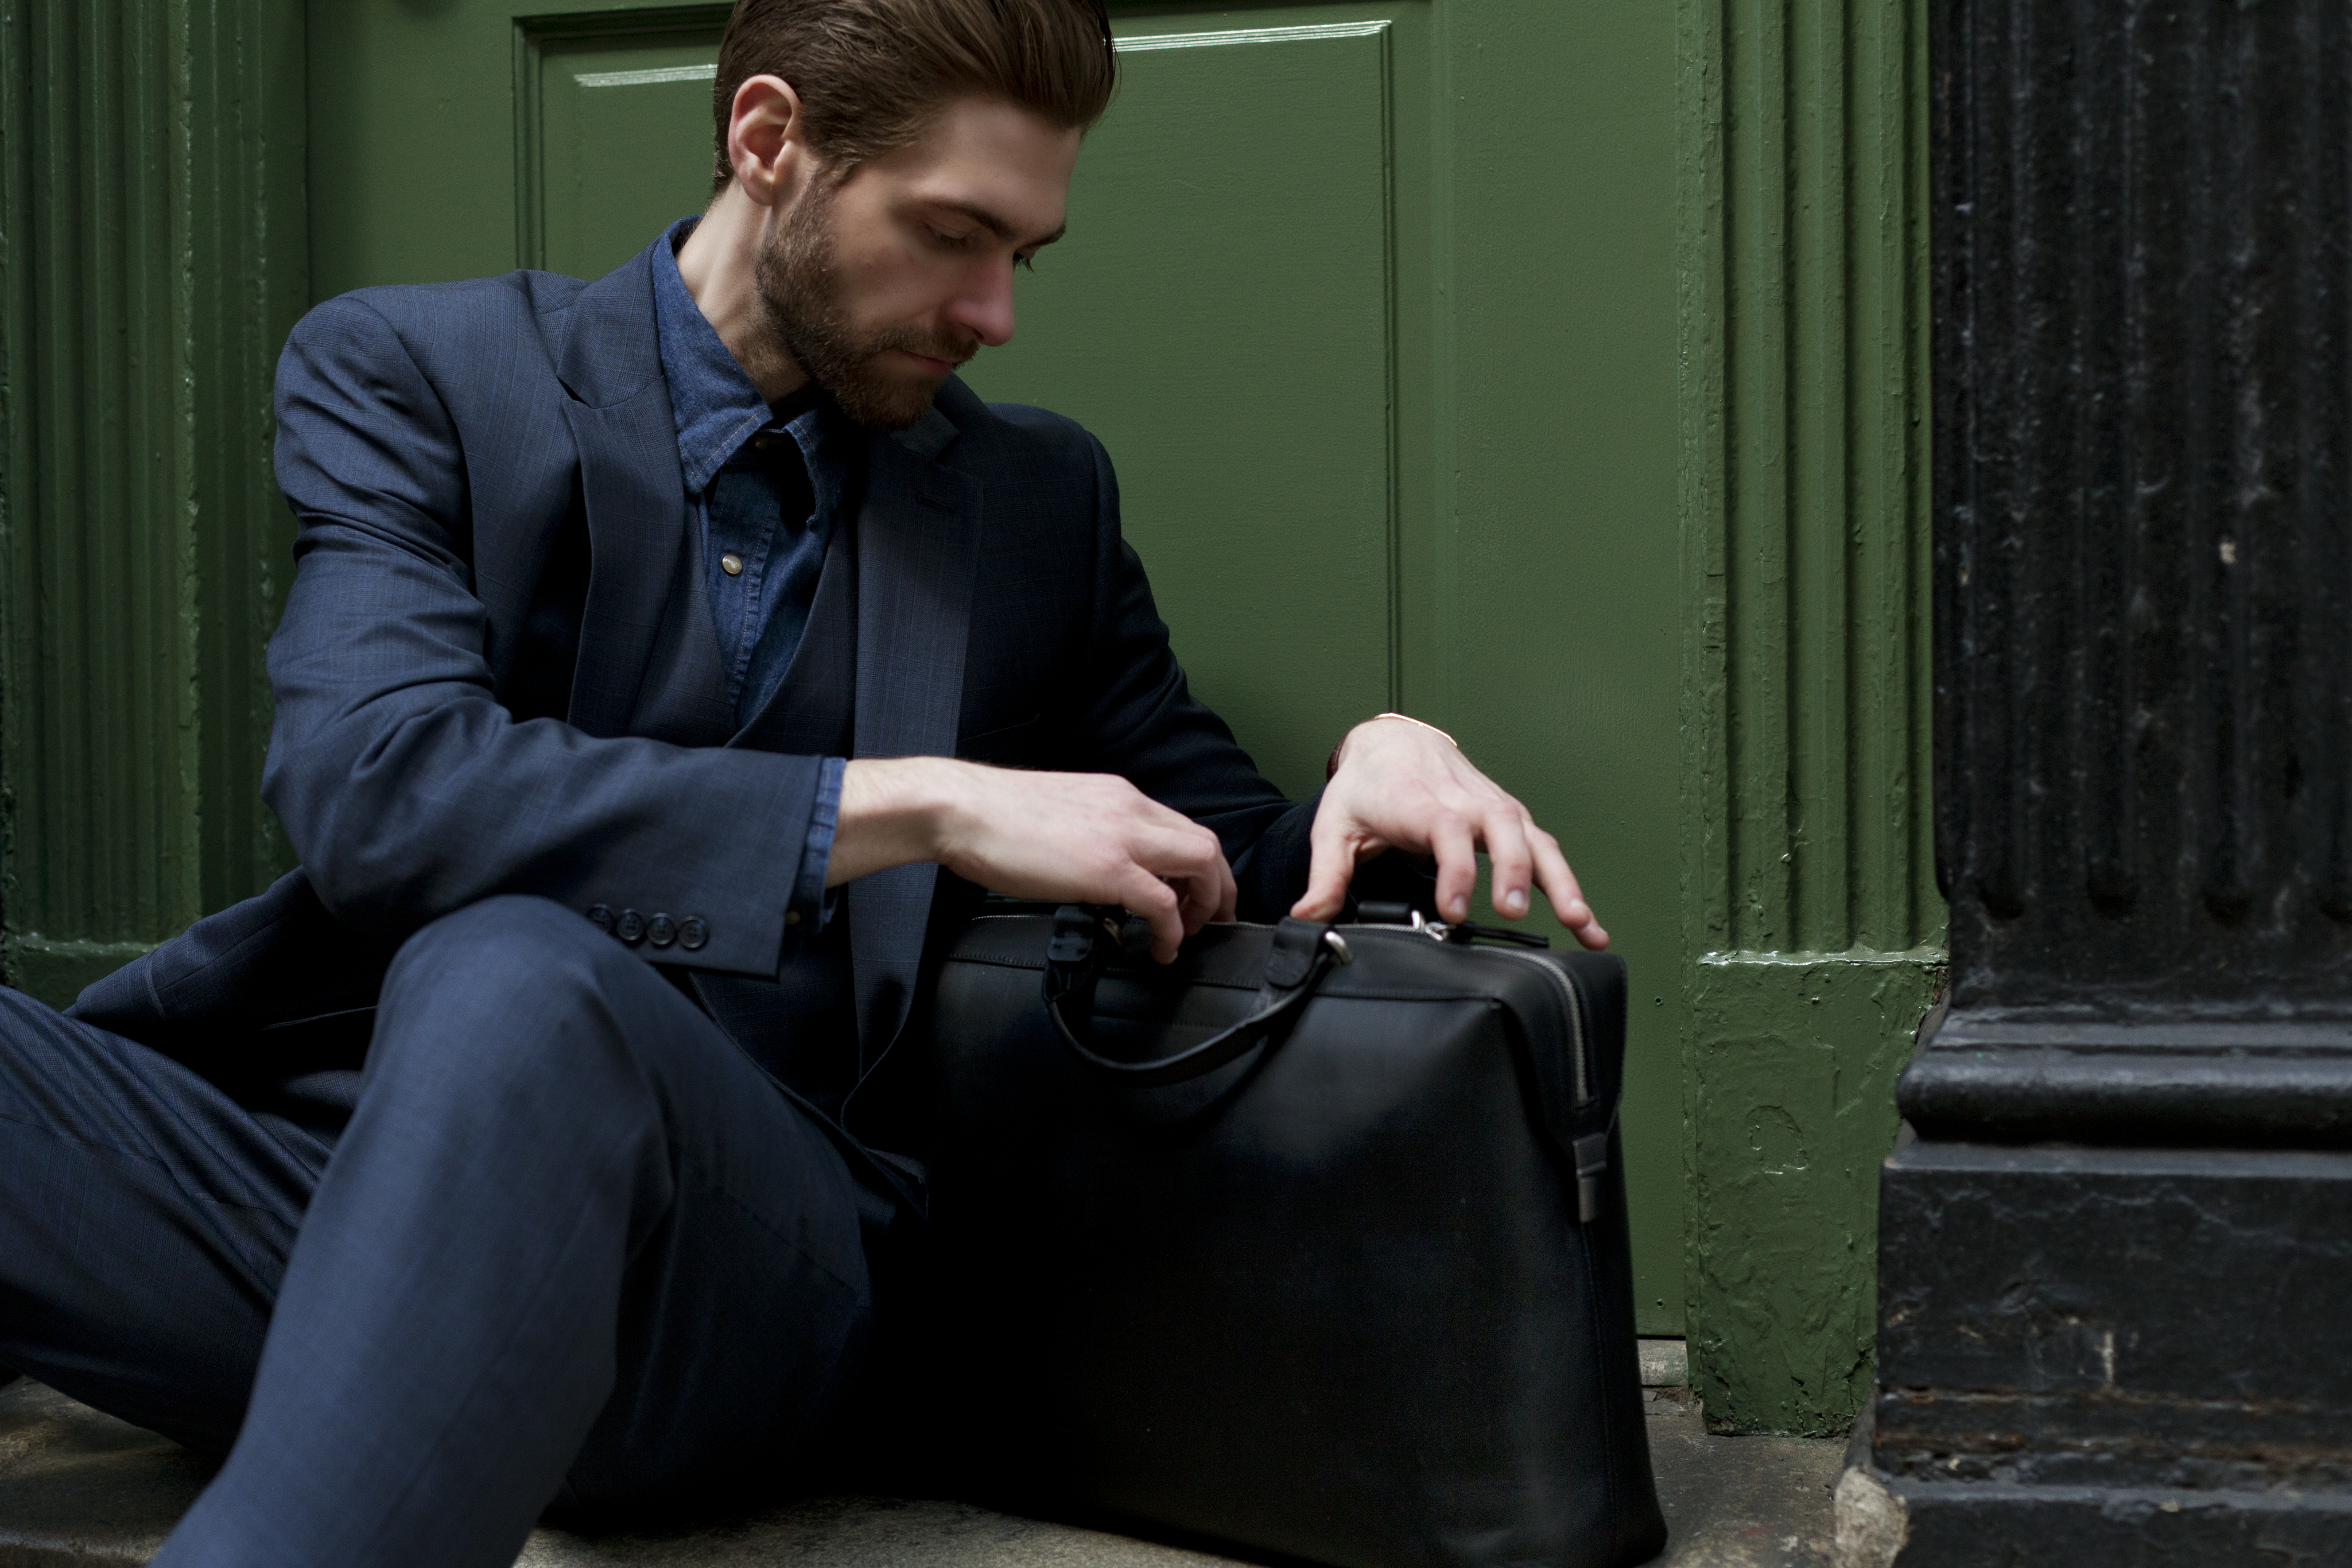 What's Trending? Men With Bags! | HuffPost